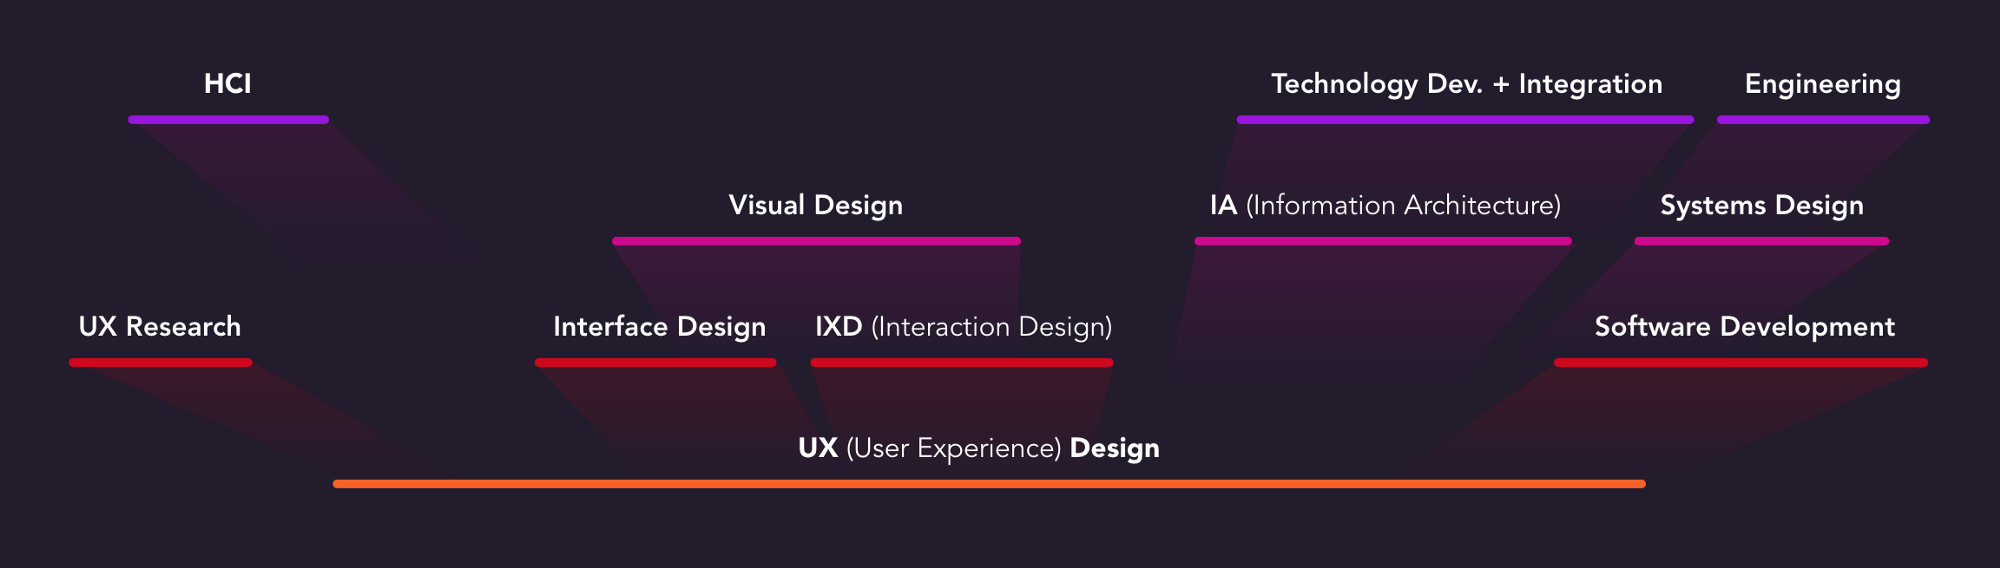 UX (User Experience) competencies